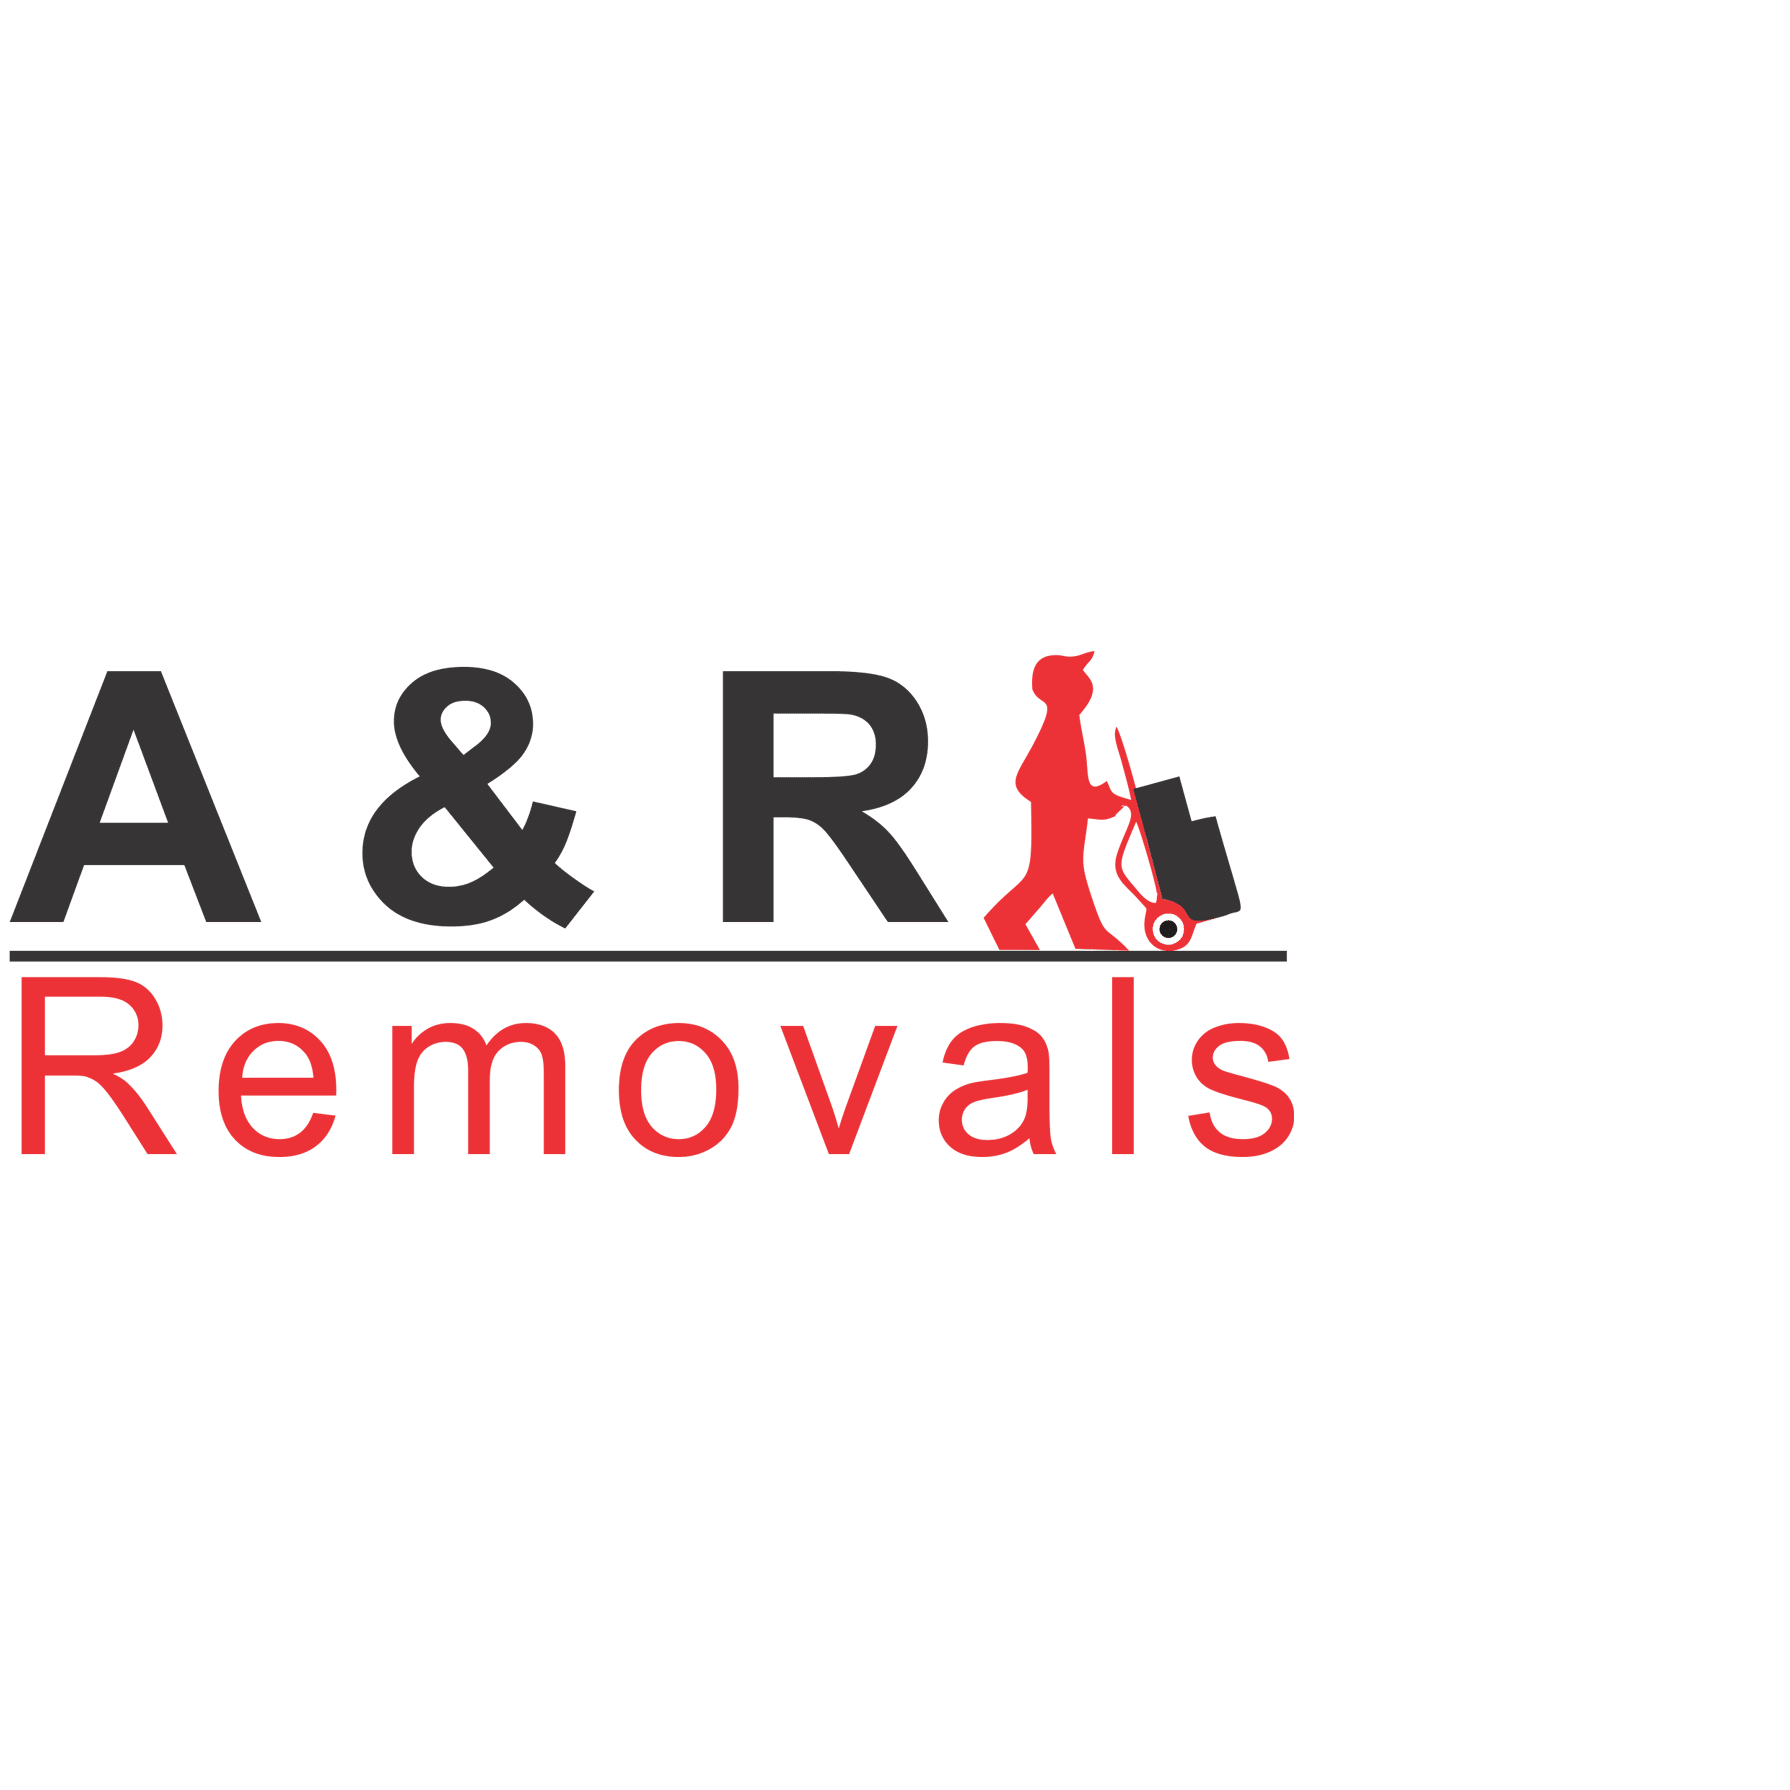 A & R Removals Ltd - Peterborough, Cambridgeshire PE3 9EB - 03335 778997 | ShowMeLocal.com